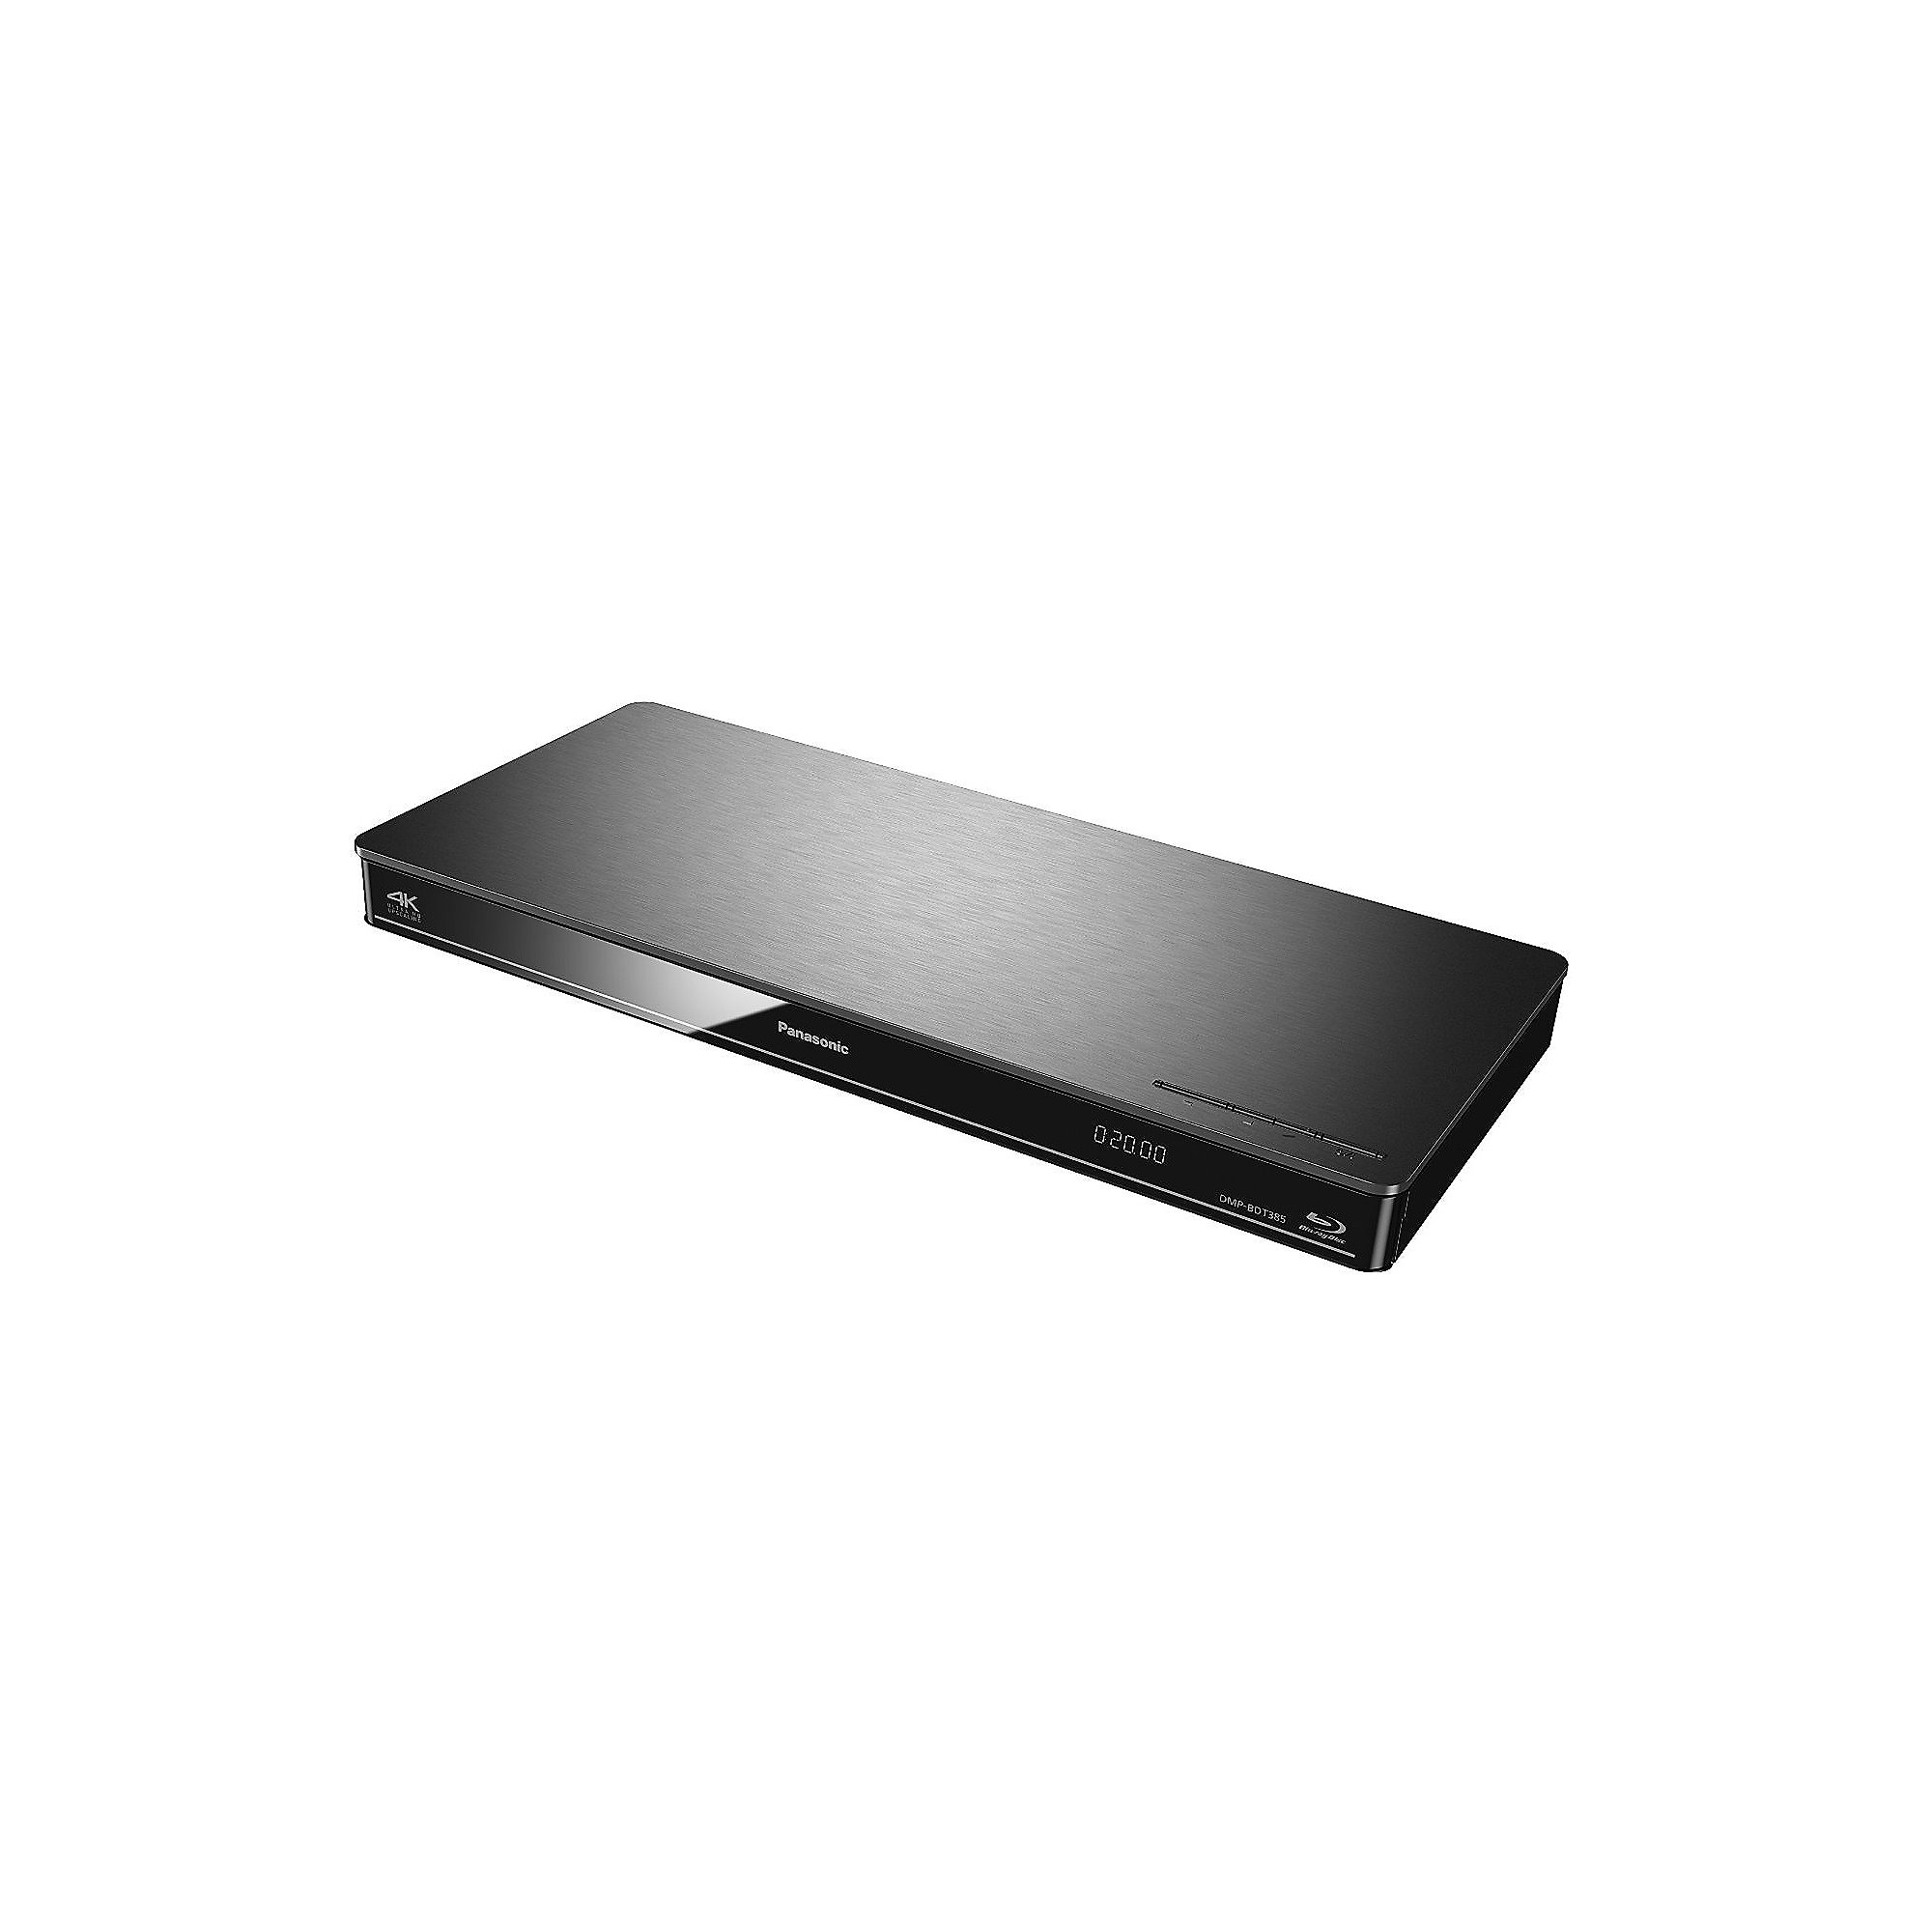 Panasonic DMP-BDT384 Silber 3D Blu-ray Player WLAN 4K DLNA